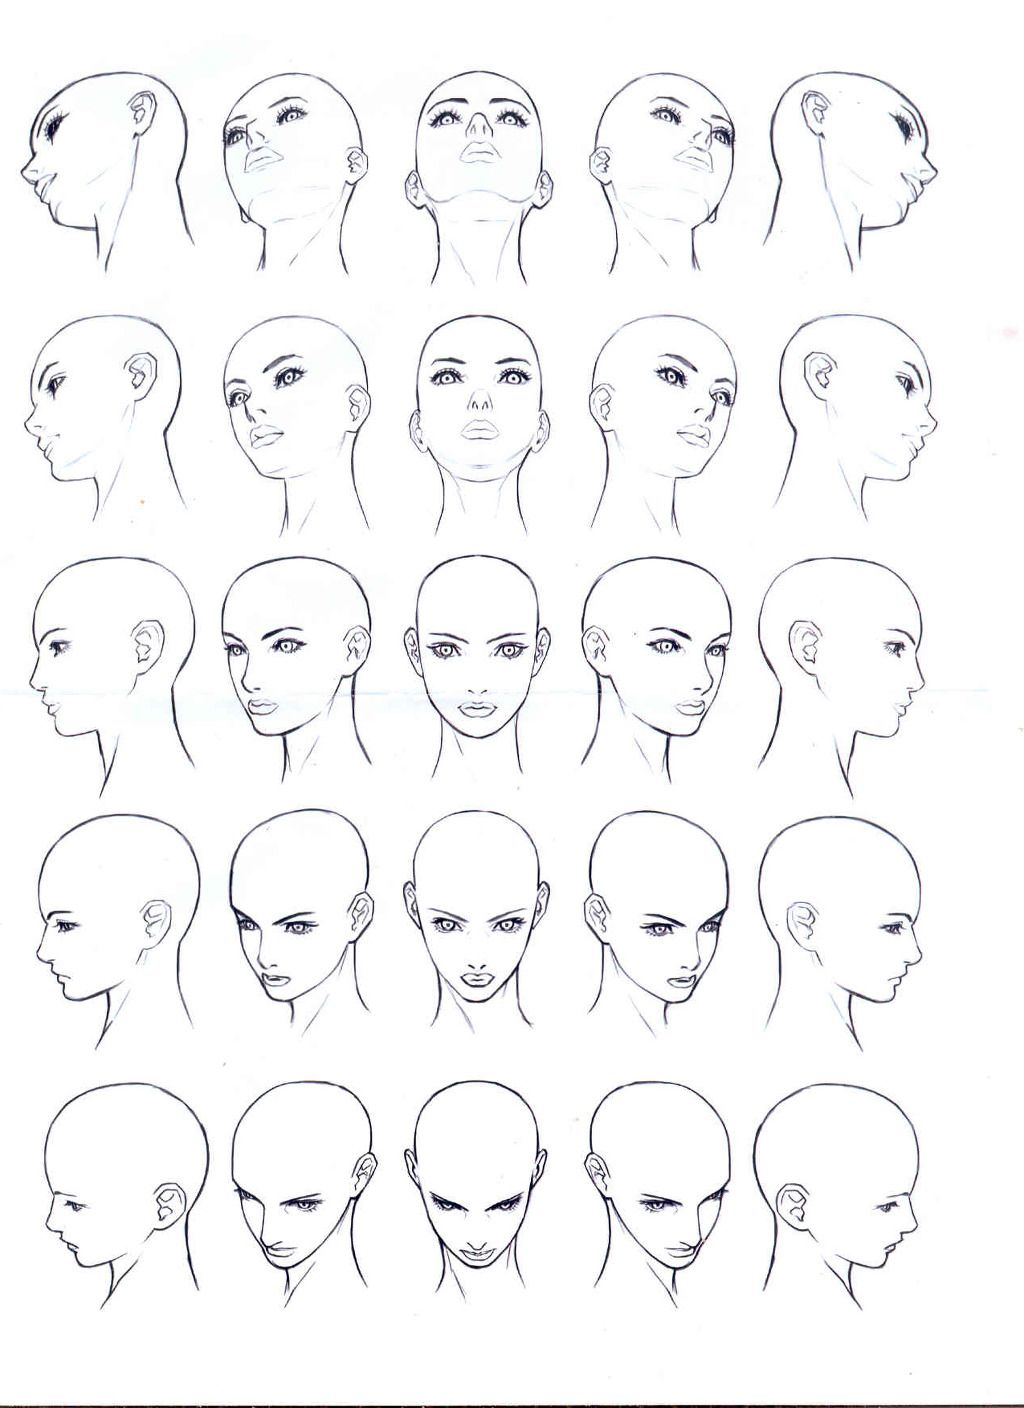 Pin By Basl On To Help The Artist In 2020 Face Drawing Reference Drawing Tutorial Face Face Drawing